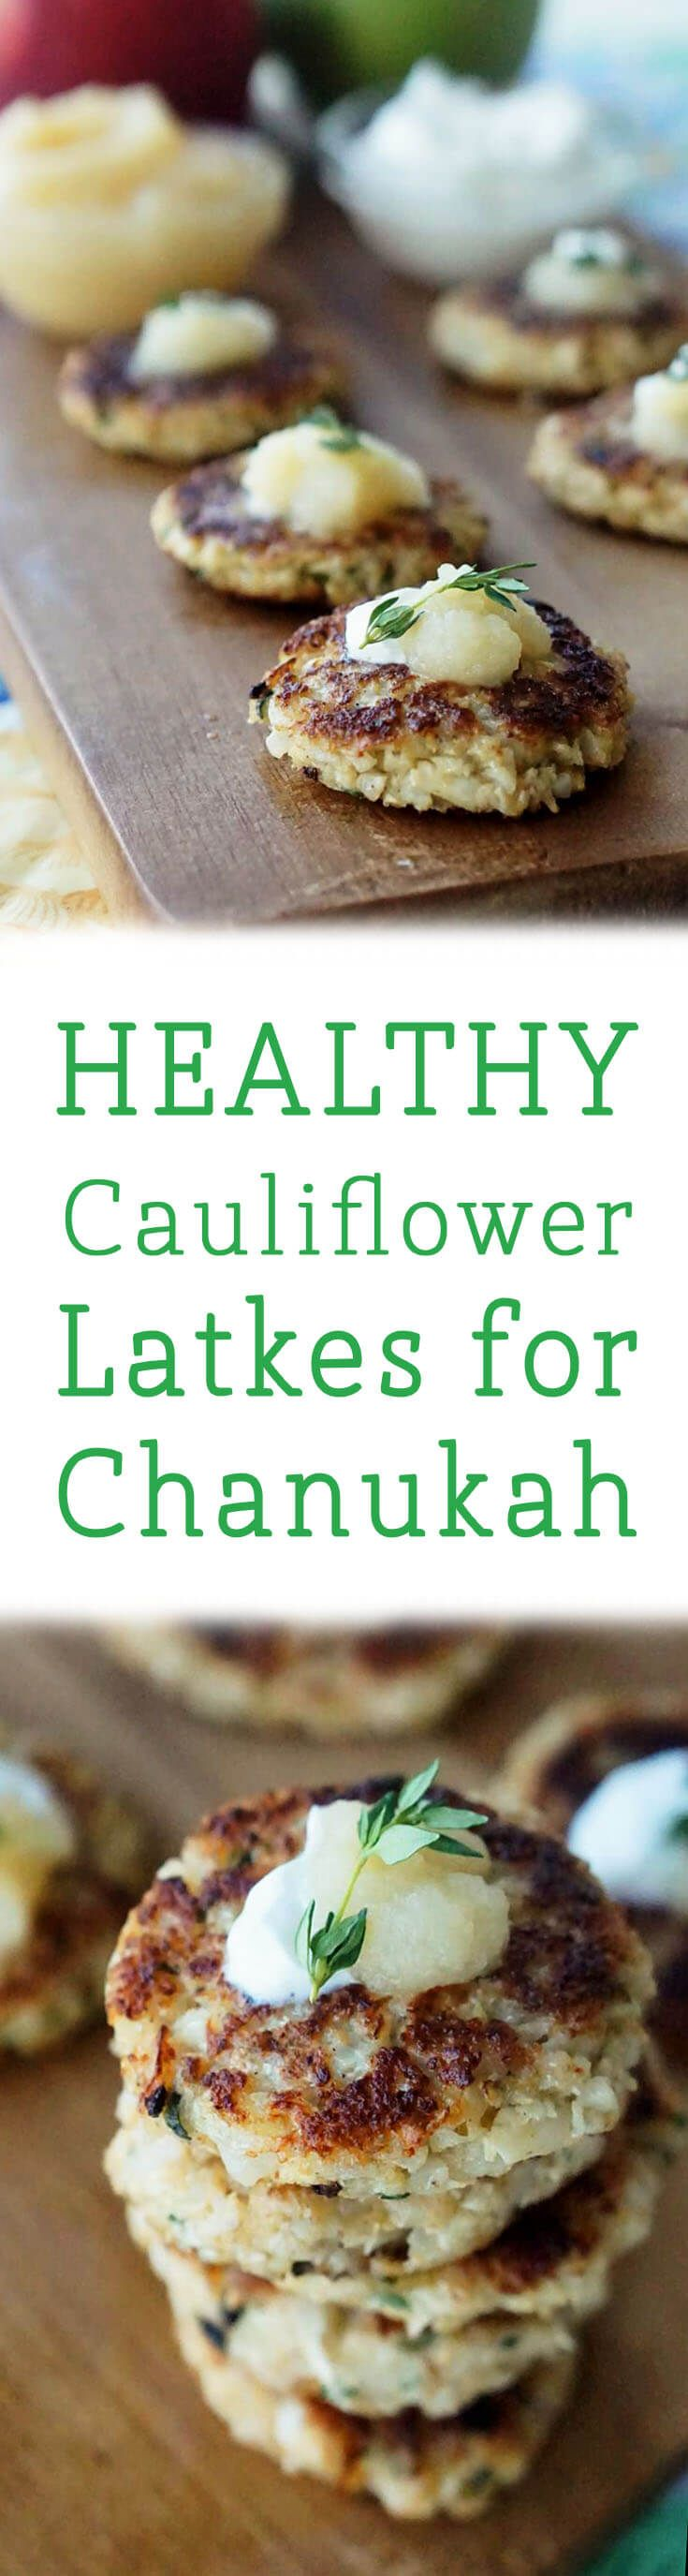 These healthy Cauliflower latkes are a great healthy option for your annual Chanukuh celebrations!